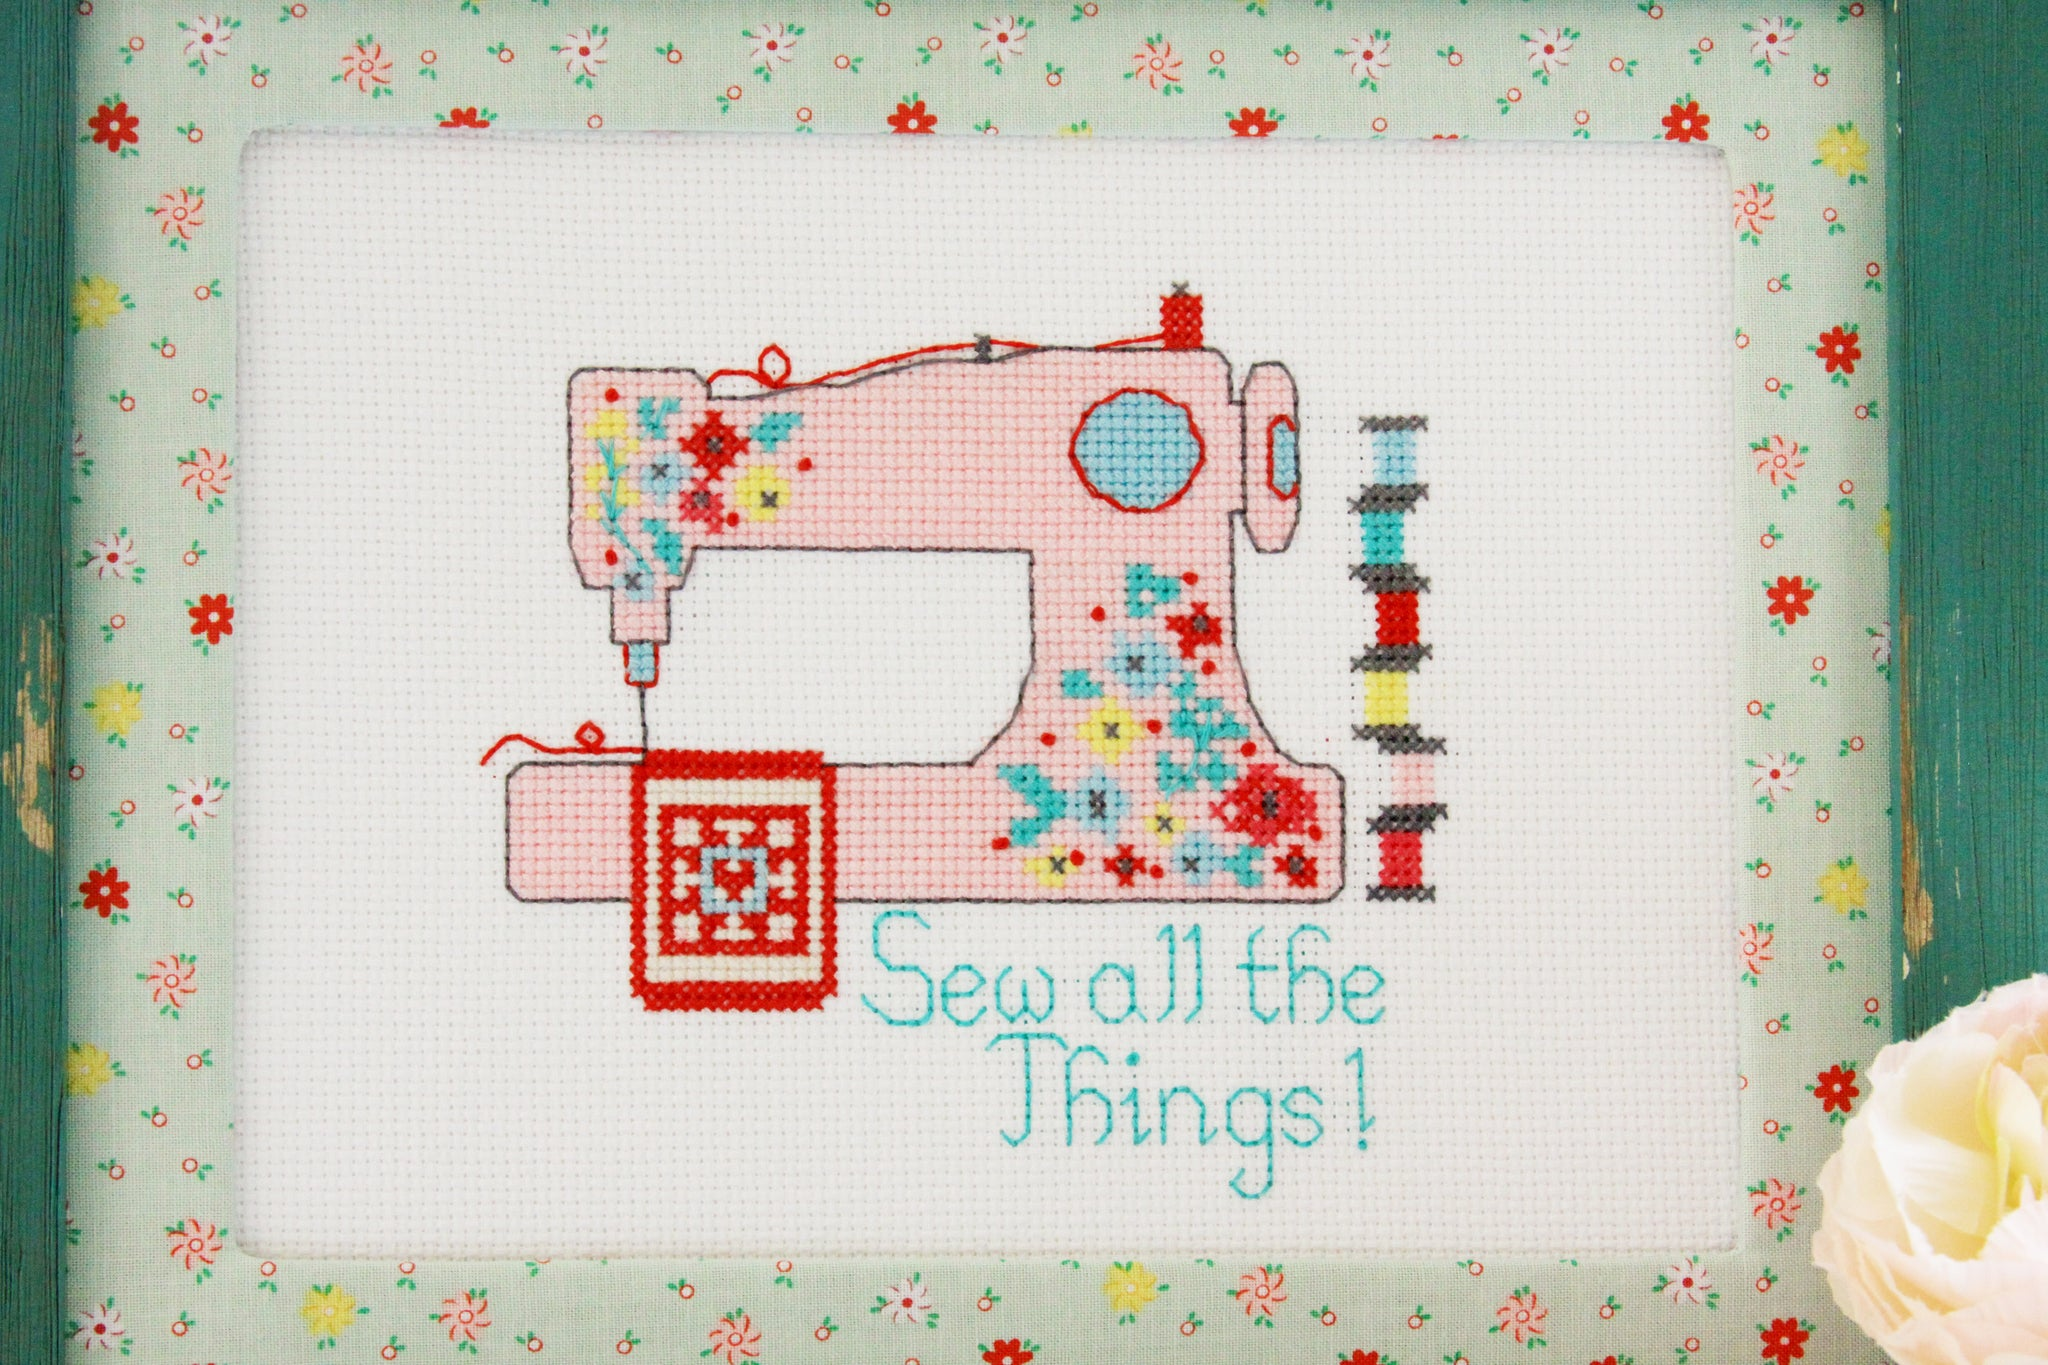 Flamingo Toes and DMC Pink Floral Embroidery Hoop Sew All The Things Cross Stitch Pattern